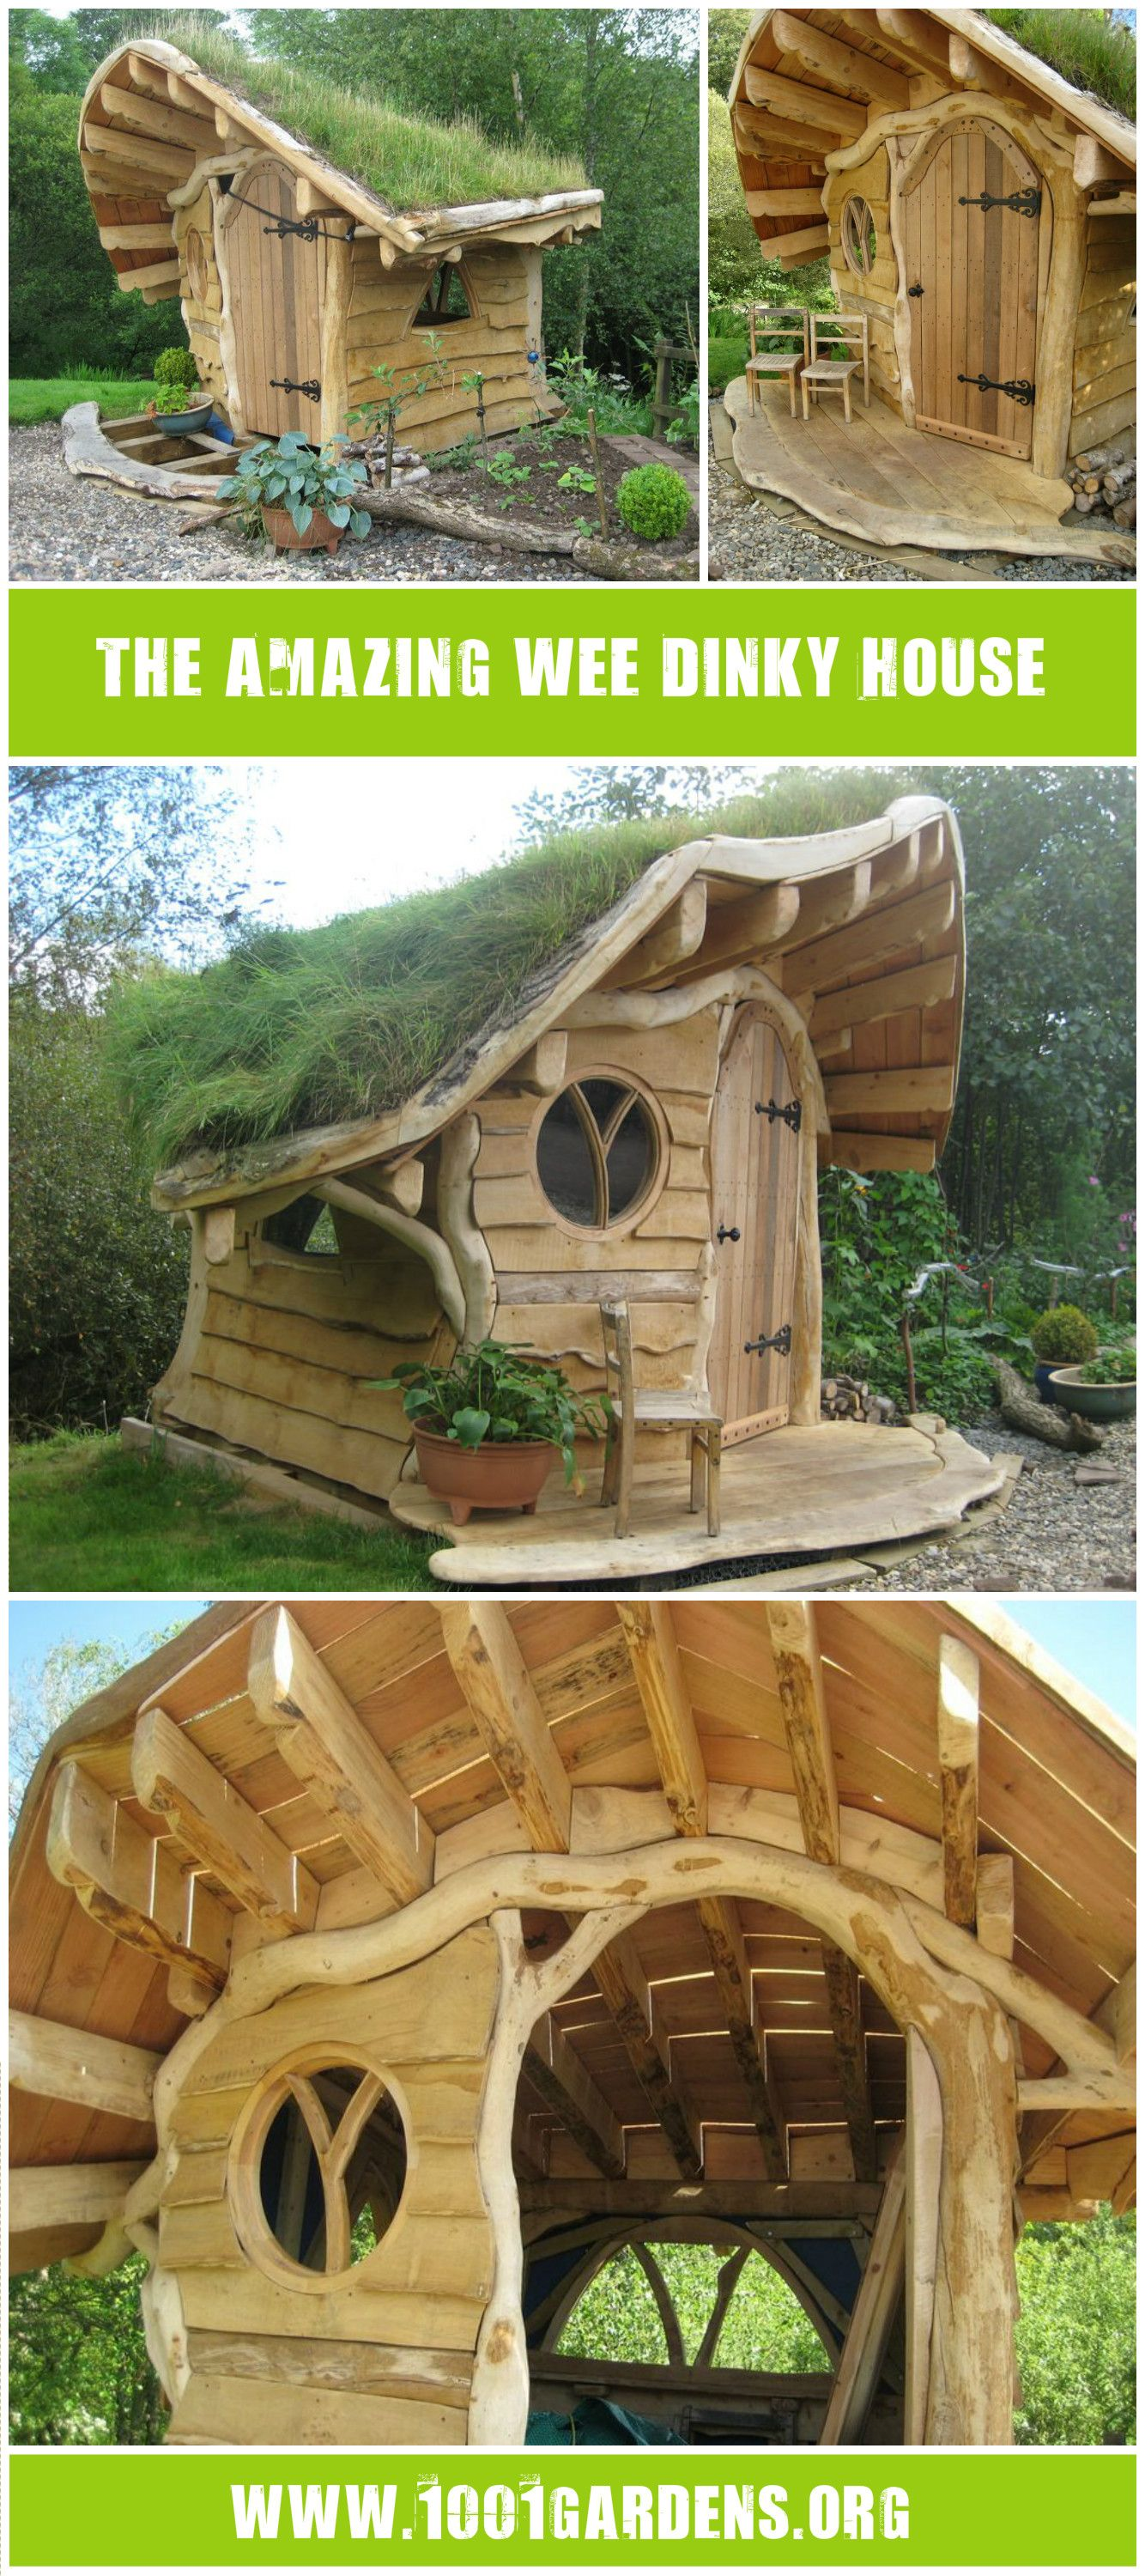 The Amazing Wee Dinky House Playhouse | Sona | Petite maison ...